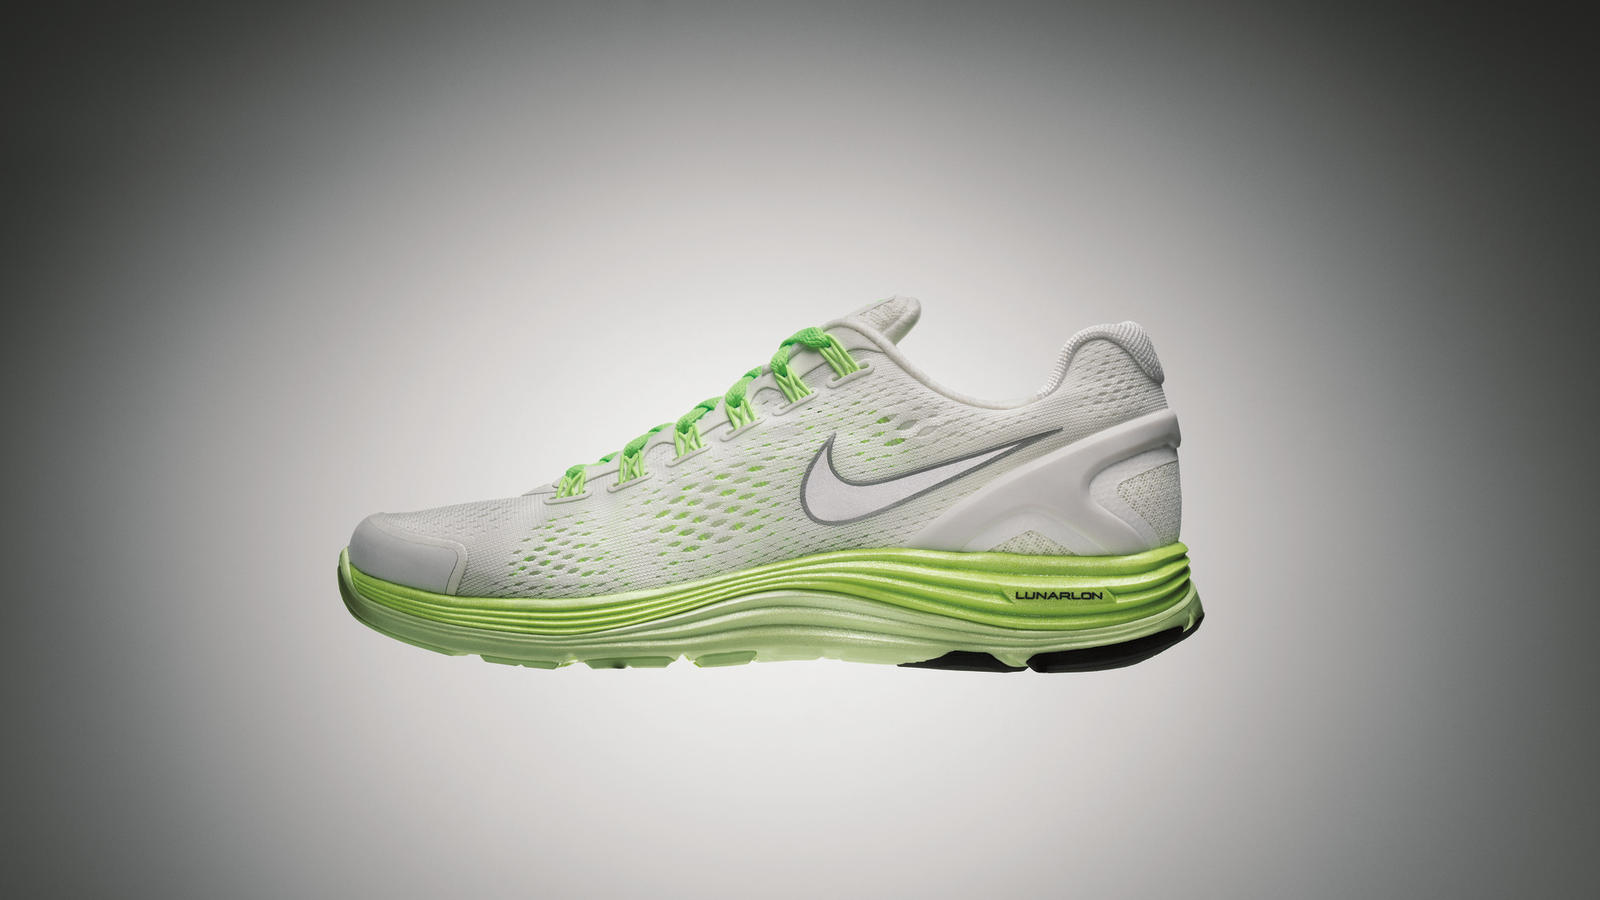 the new nike lunarglide